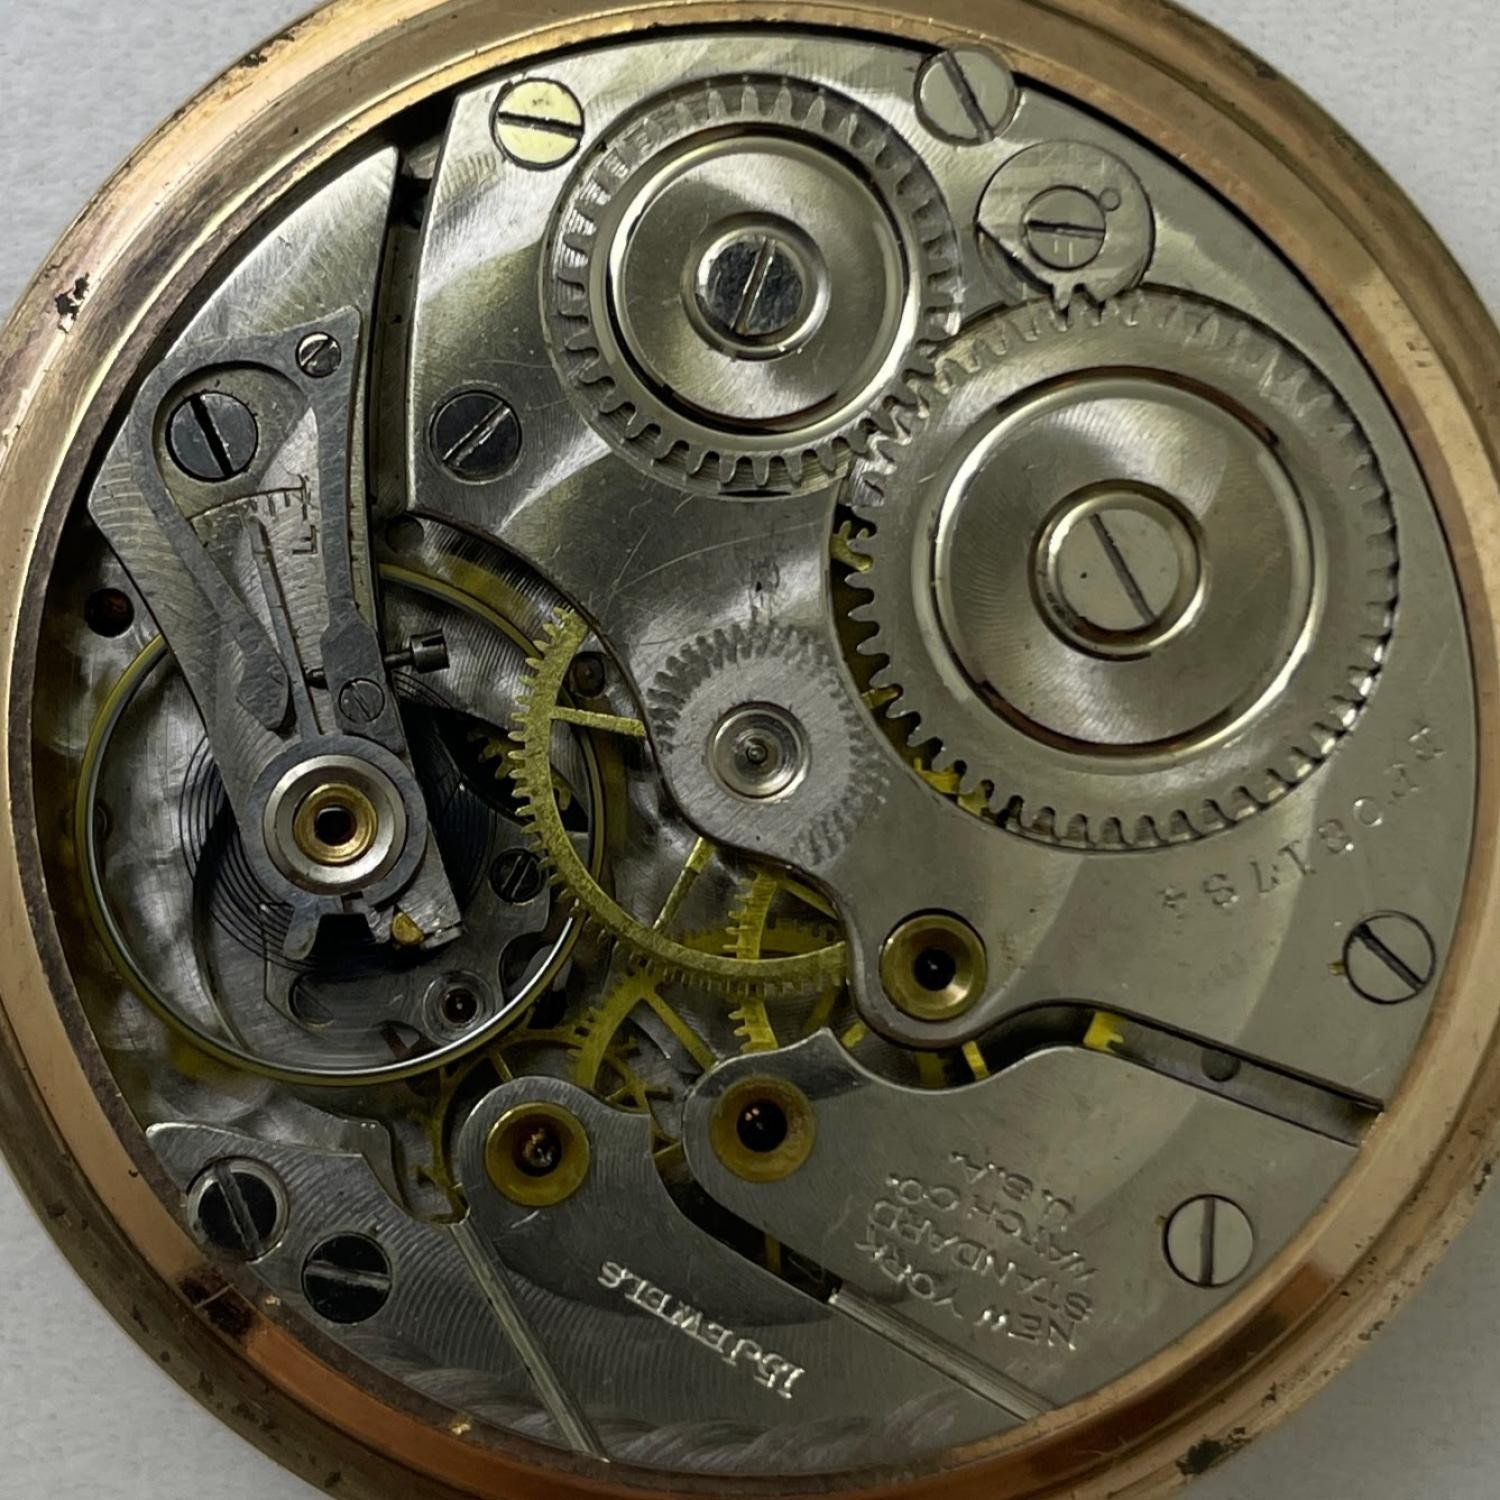 Image of New York Standard Watch Co. 1571 #BF081784 Movement